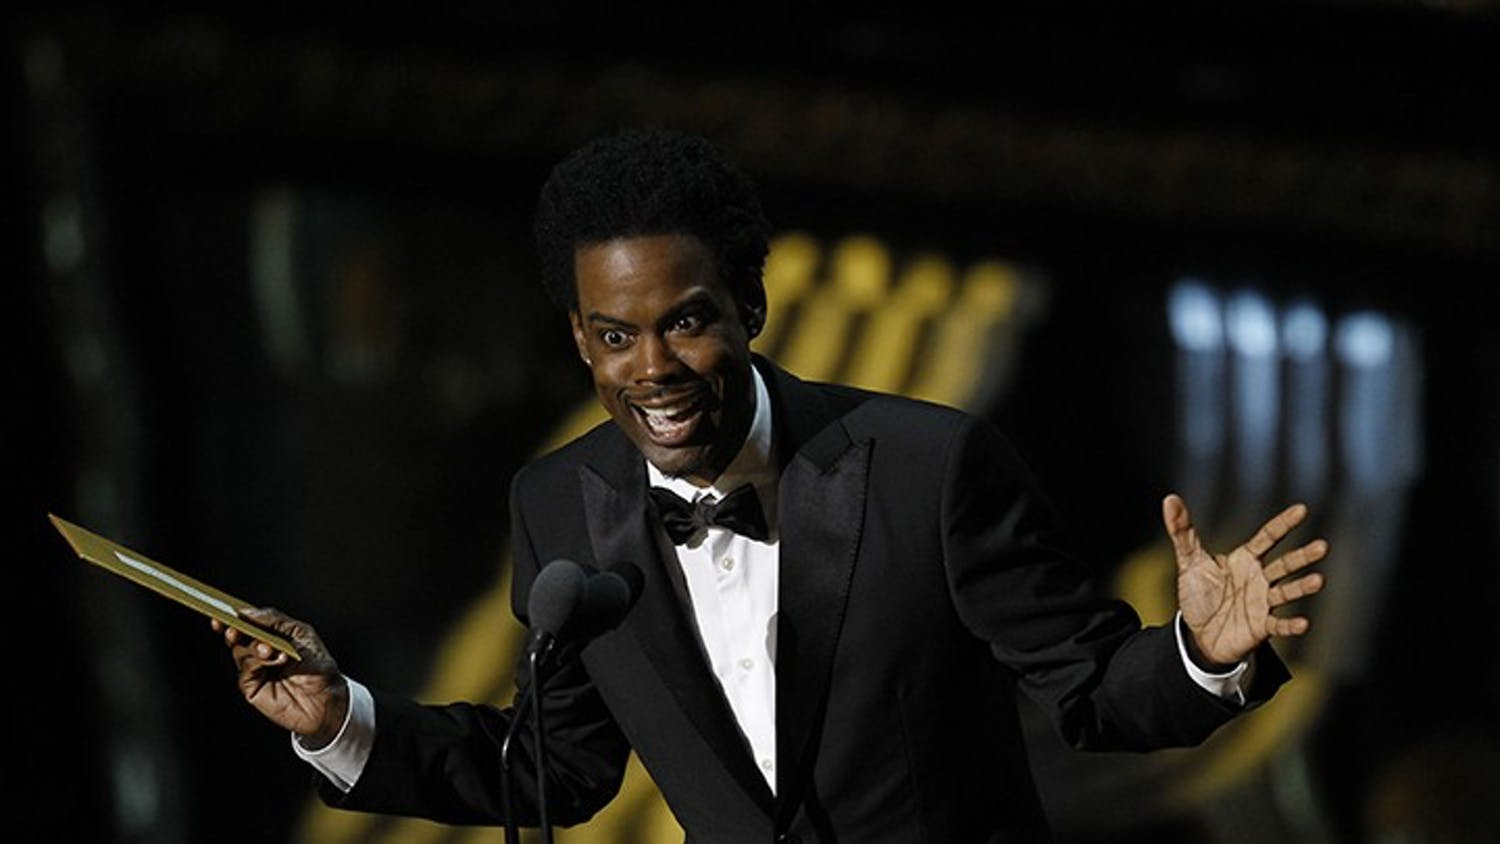 Presenter Chris Rock on stage at the 84th Annual Academy Awards show at the Hollywood and Highland Center in Los Angeles, California, on Sunday, February 26, 2012. (Robert Gauthier/Los Angeles Times/MCT)